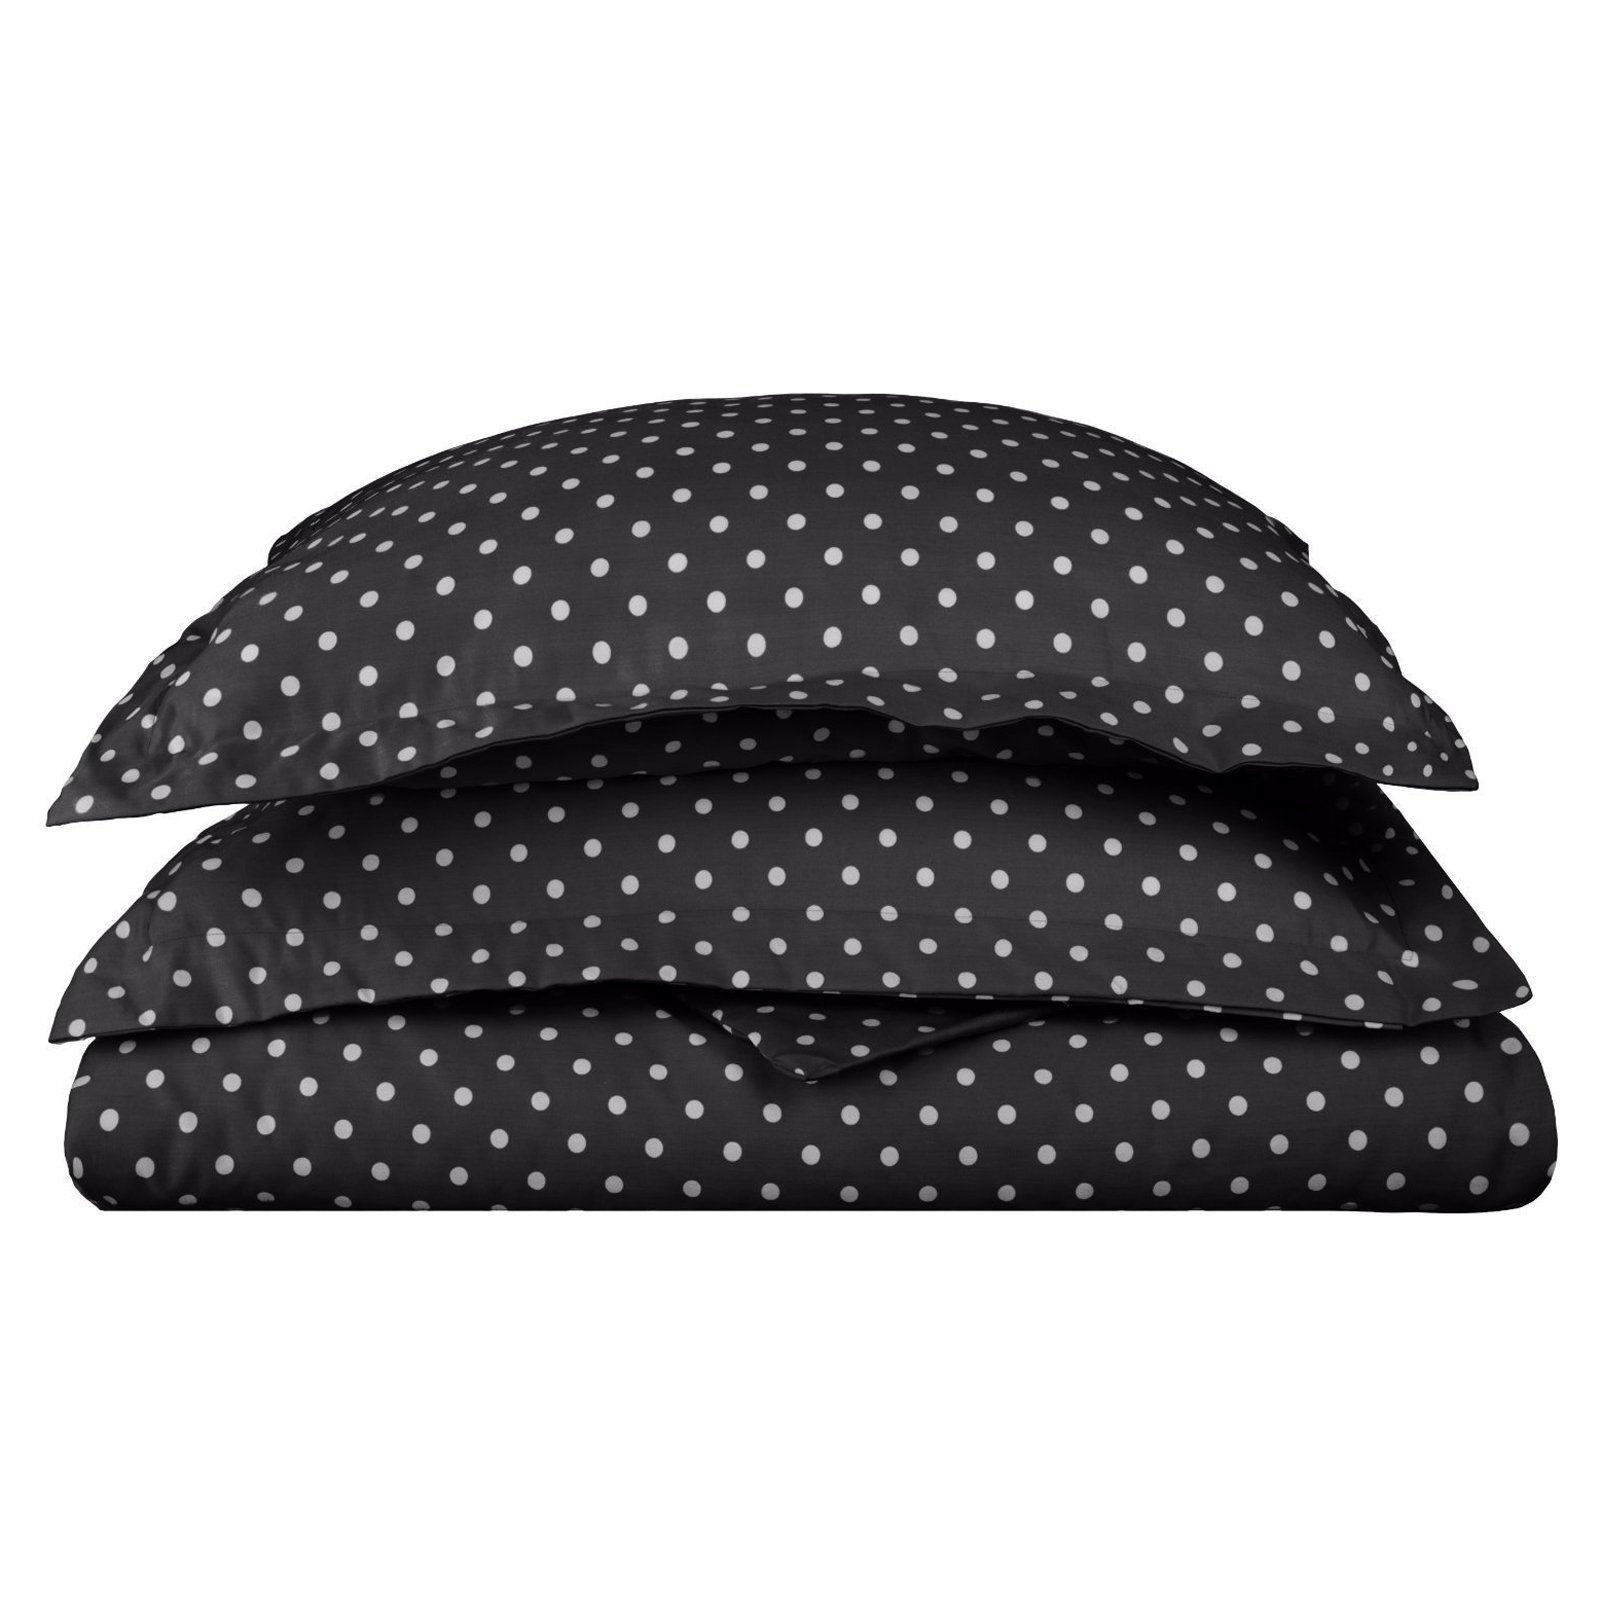 Superior 600 Thread Count Wrinkle Resistant Polka Dots Duvet Cover Set